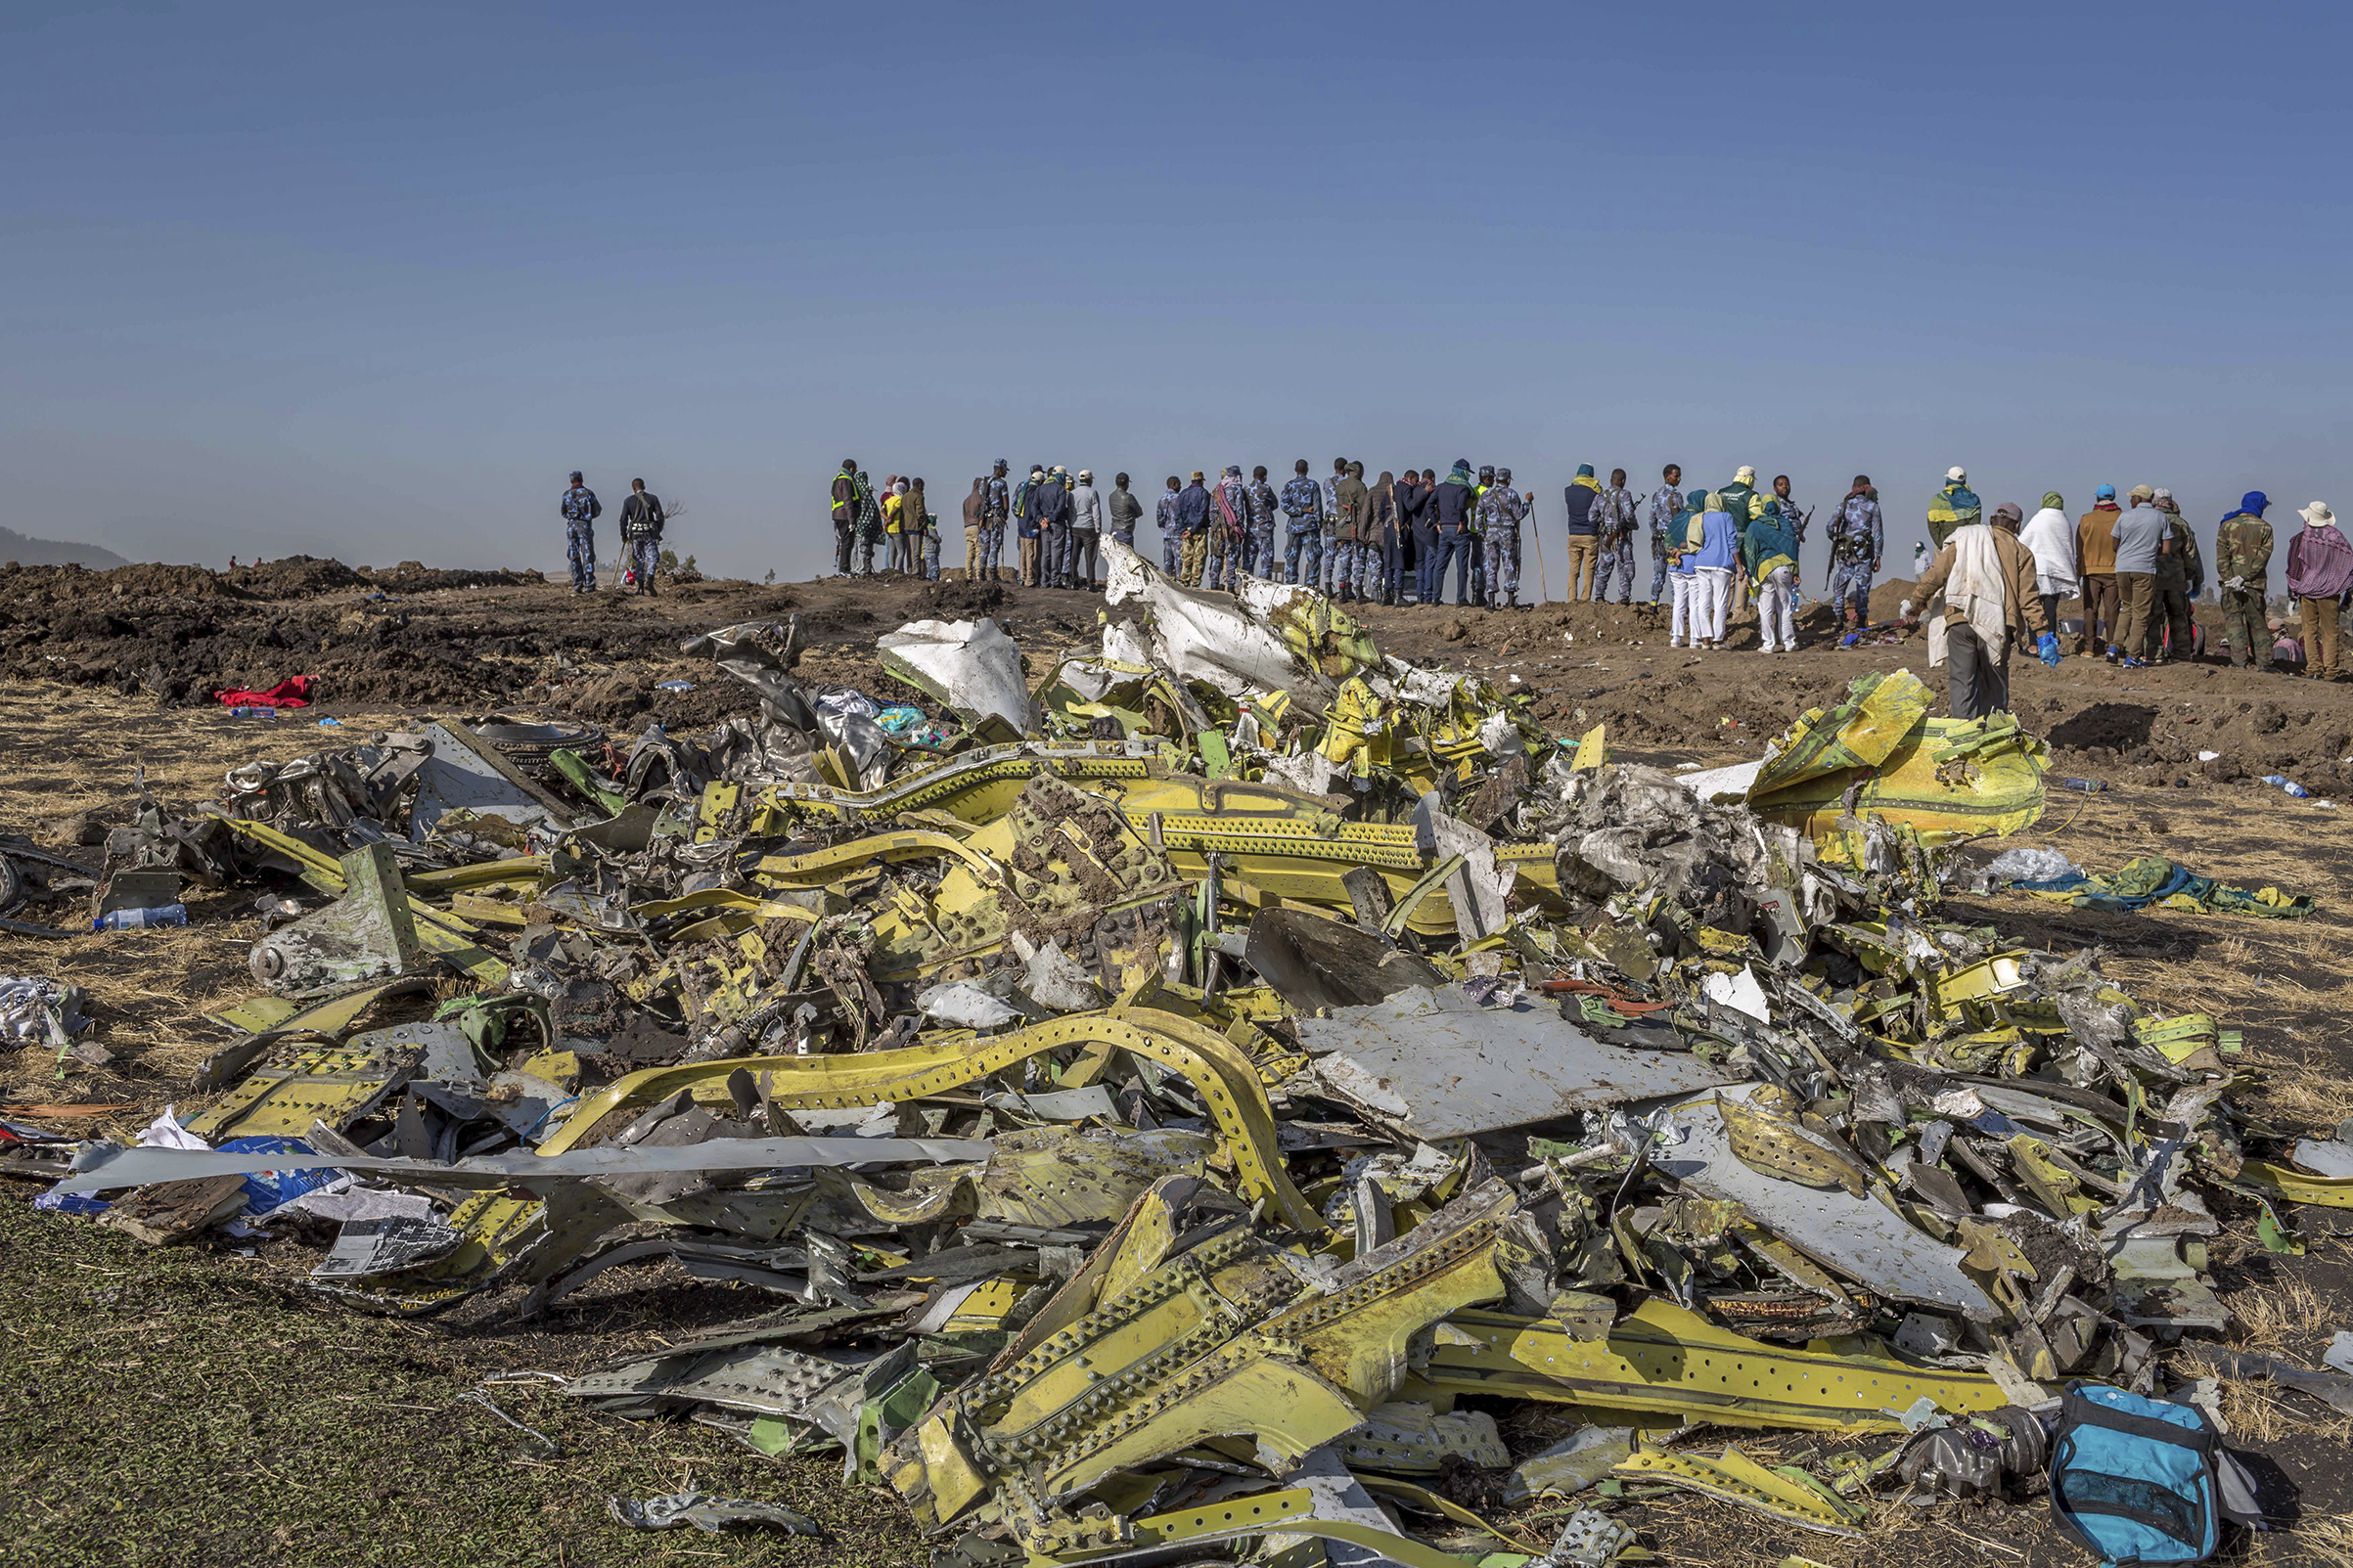 Wreckage near Bishoftu, south of Addis Ababa, after the March 10 Ethiopian Airlines crash